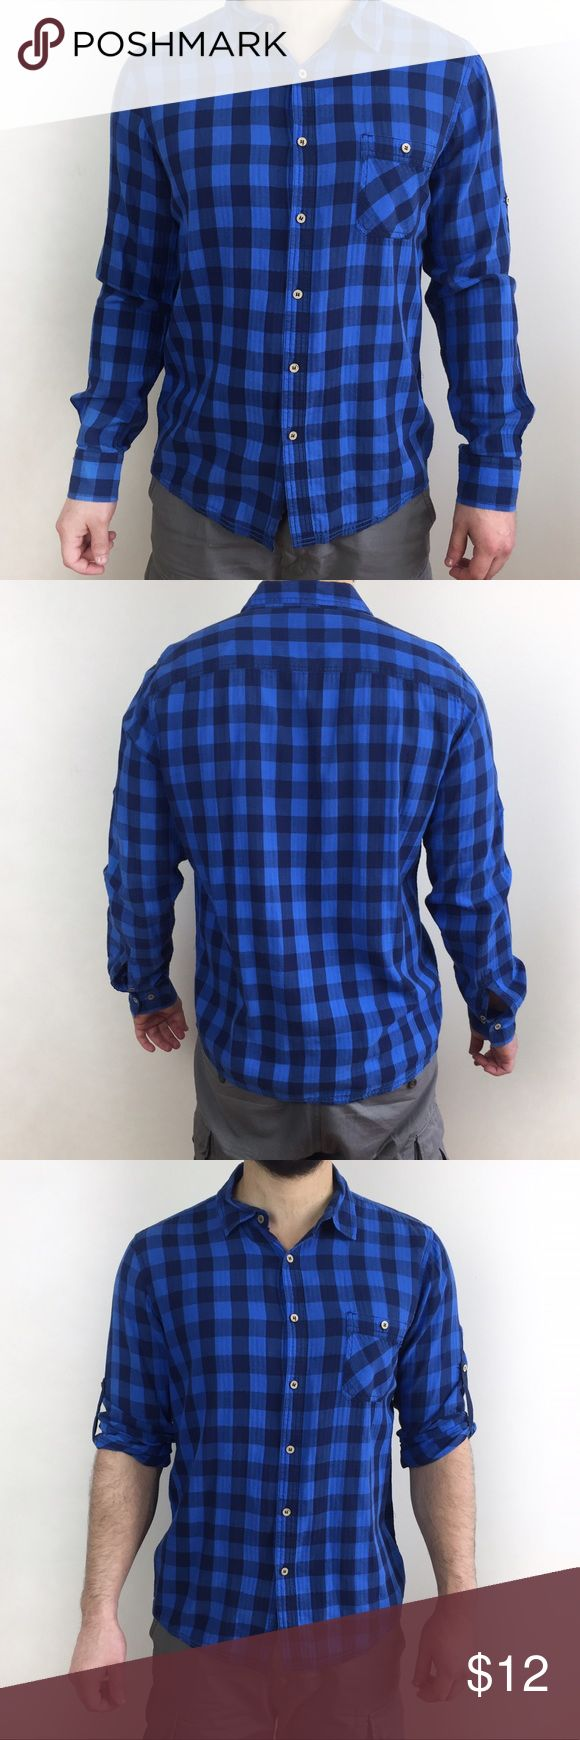 2x$15 PULL & BEAR ZARA PLAID SHIRT Pull and bear, Zara indicted sister company, plaid shirt in size XL Europe, fits like a L USA. Used condition with look and feel of pre owned, no stains or holes. 1x$12 2x$15 Zara Shirts